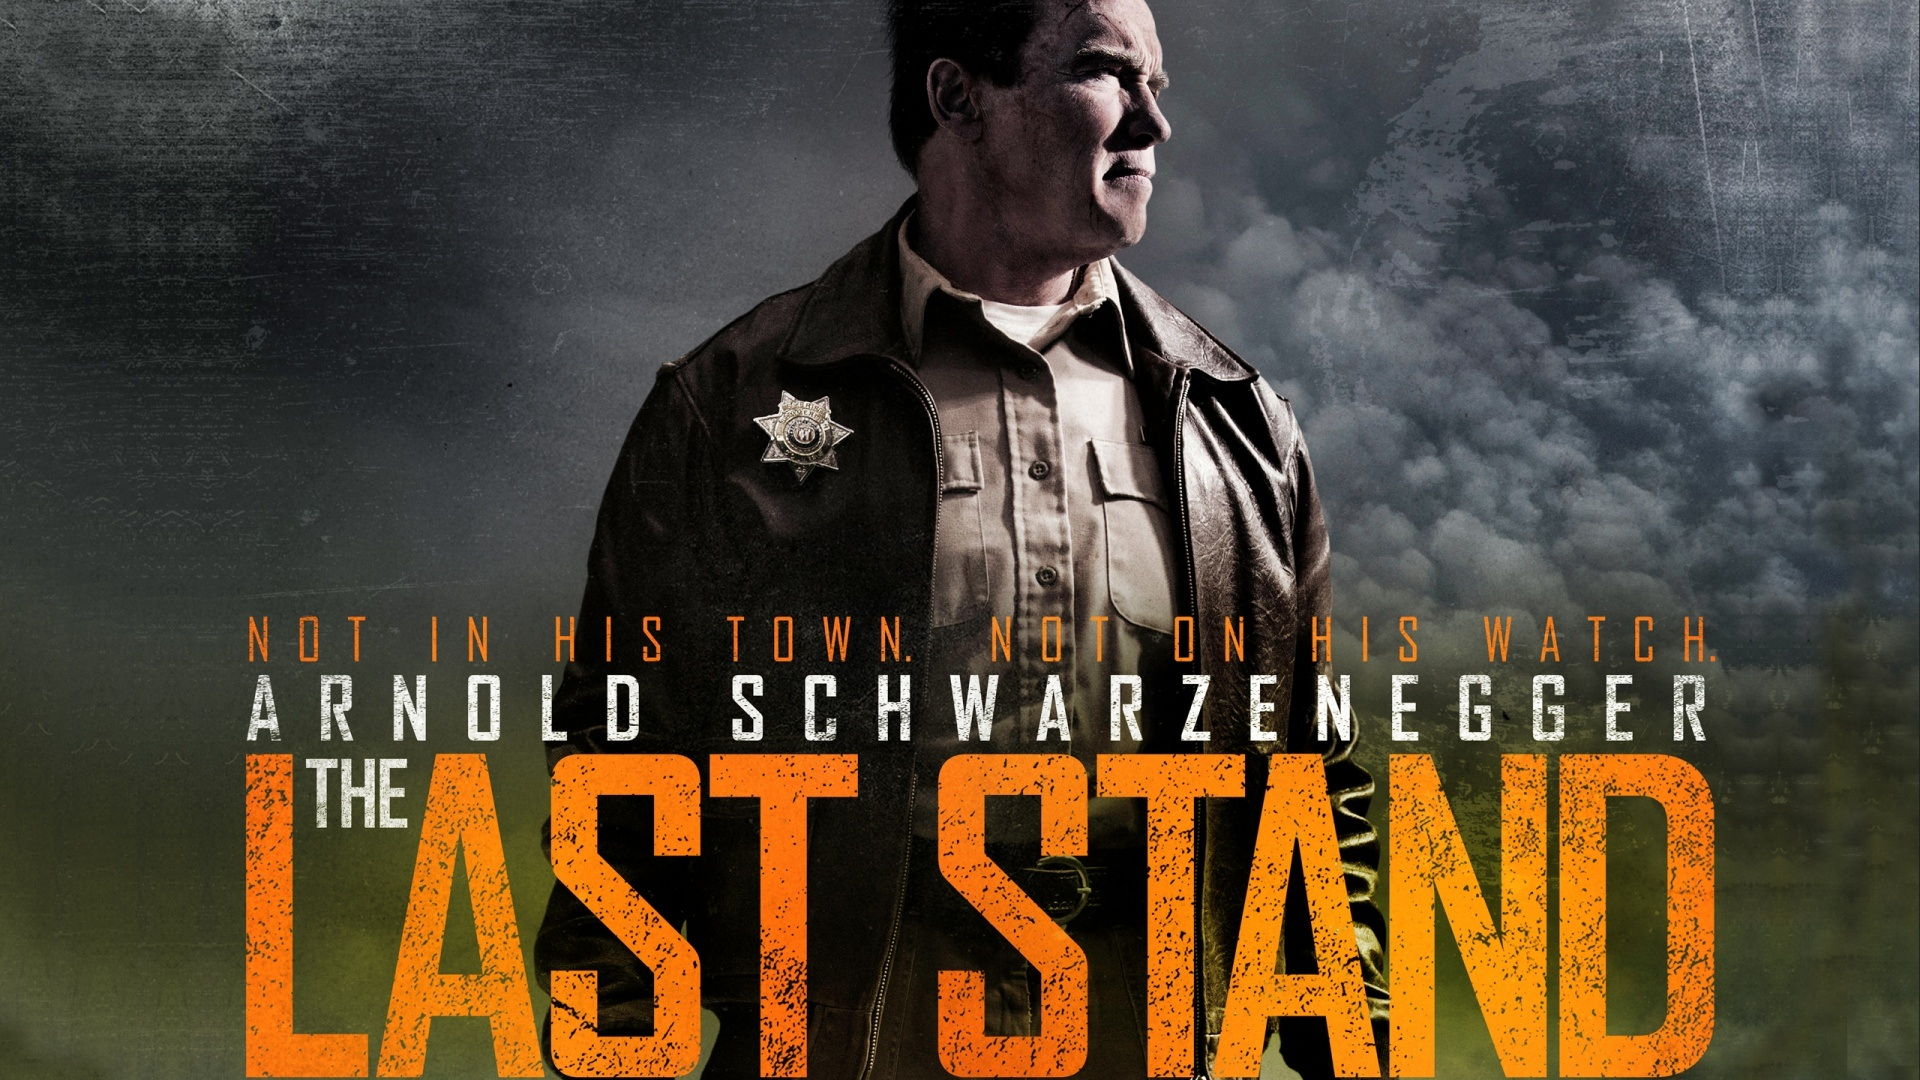 The-Last-Stand-2013_1920x1080